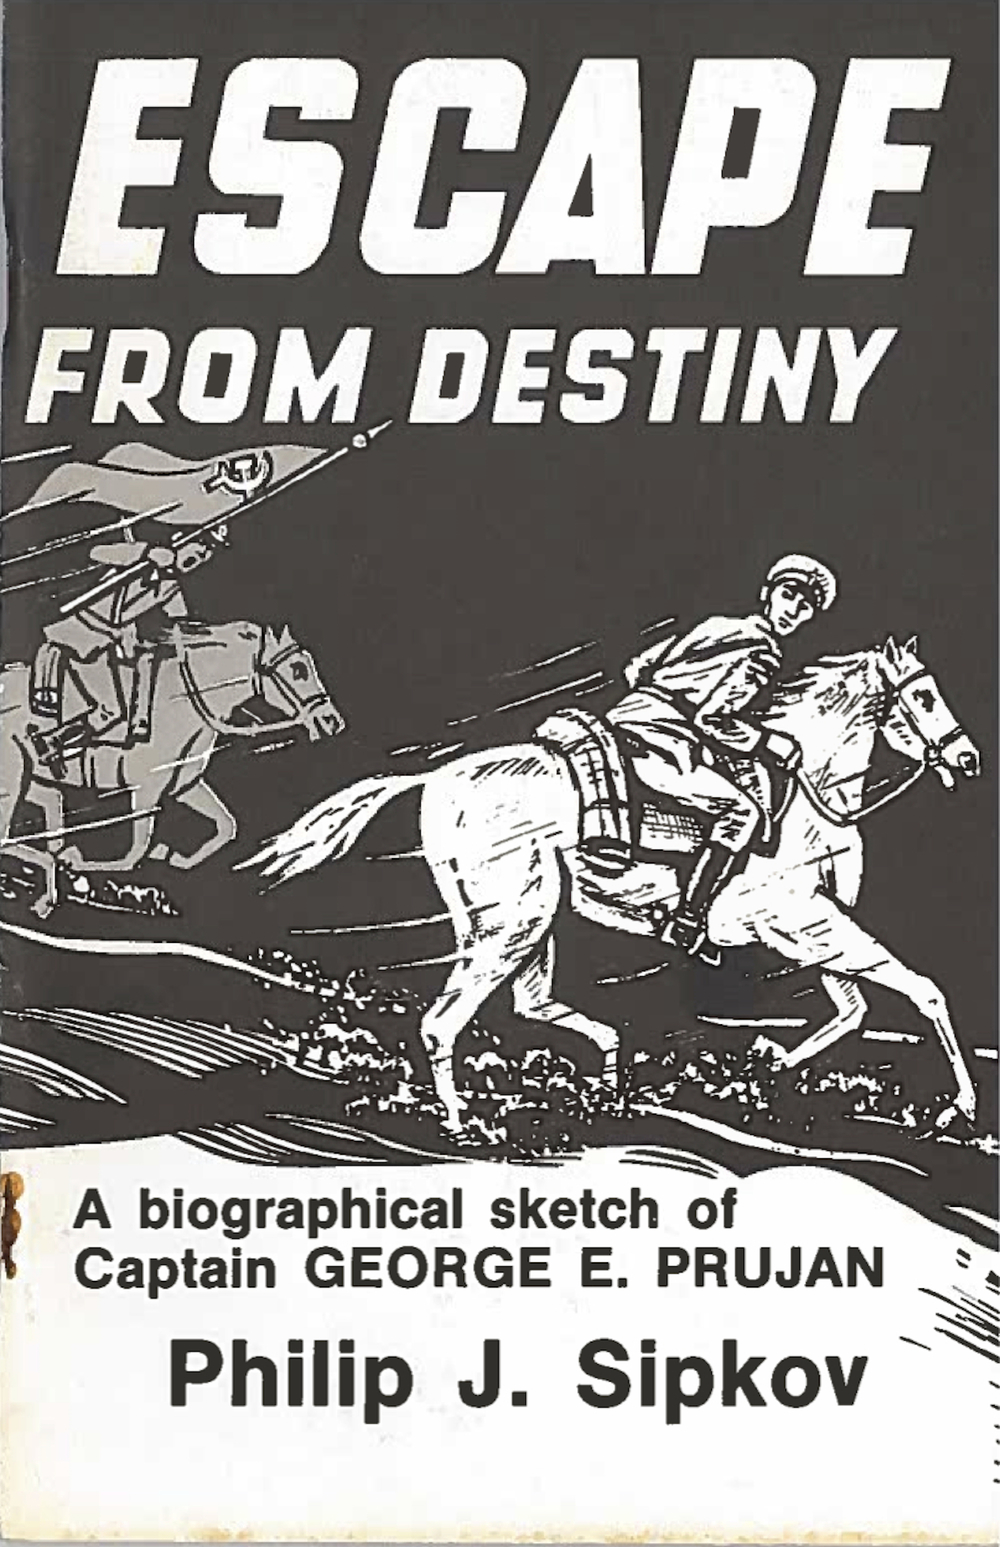 Escape from Destiny: A Biographical Sketch of Captain George E. Prujan, by Philip J. Sipkov 978-0-9859044-7-0 Goodreads - Google Books $0.99 download Available as an eBook from: aois21 market -  KoboBooks -  GooglePlay -  Smashwords    Barnes & Noble  -  Amazon -  iBookstore